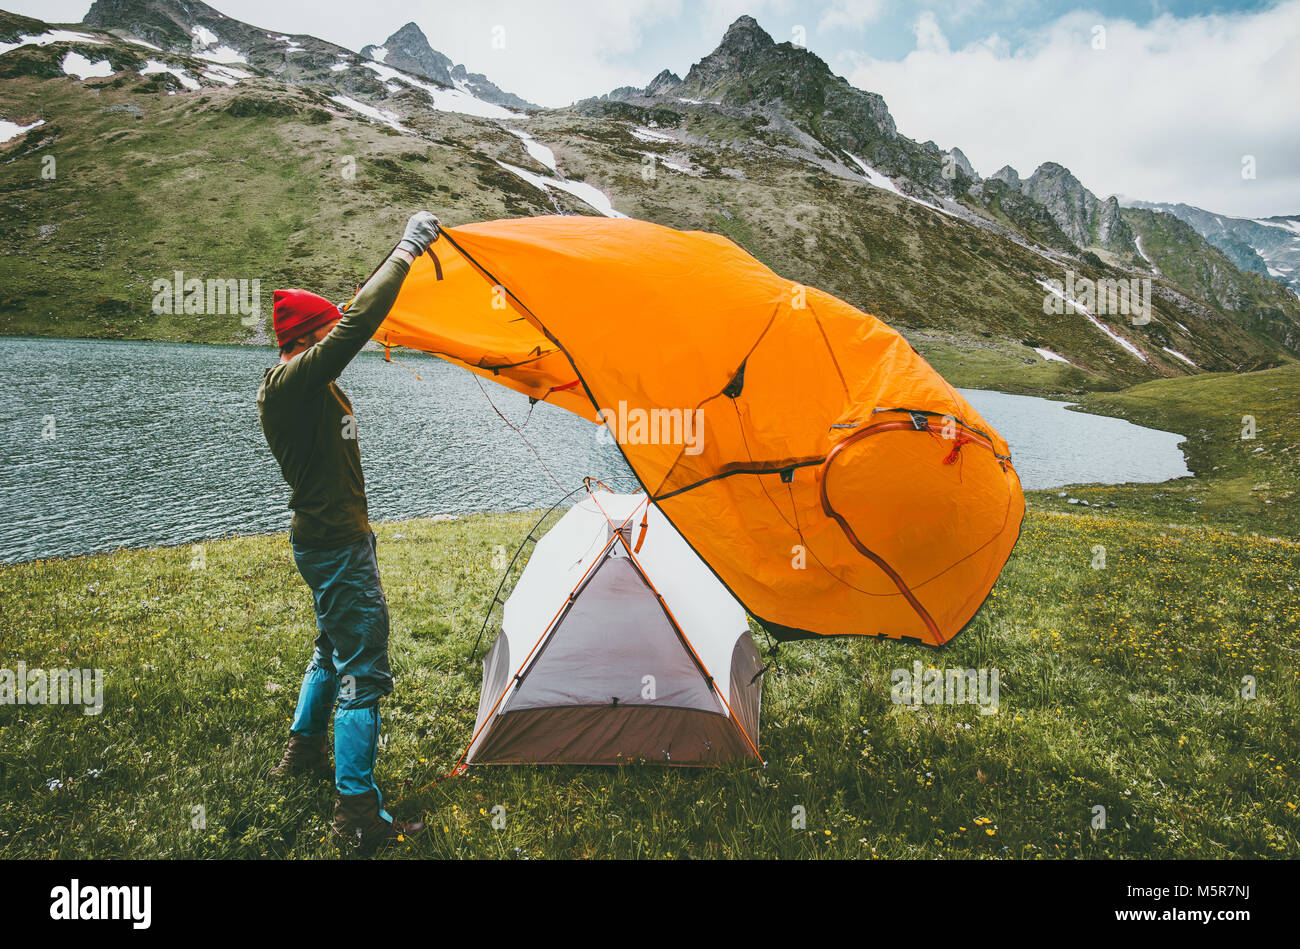 Man pitching tent camping outdoor Travel adventure lifestyle concept mountains journey vacations into the wild - Stock Image